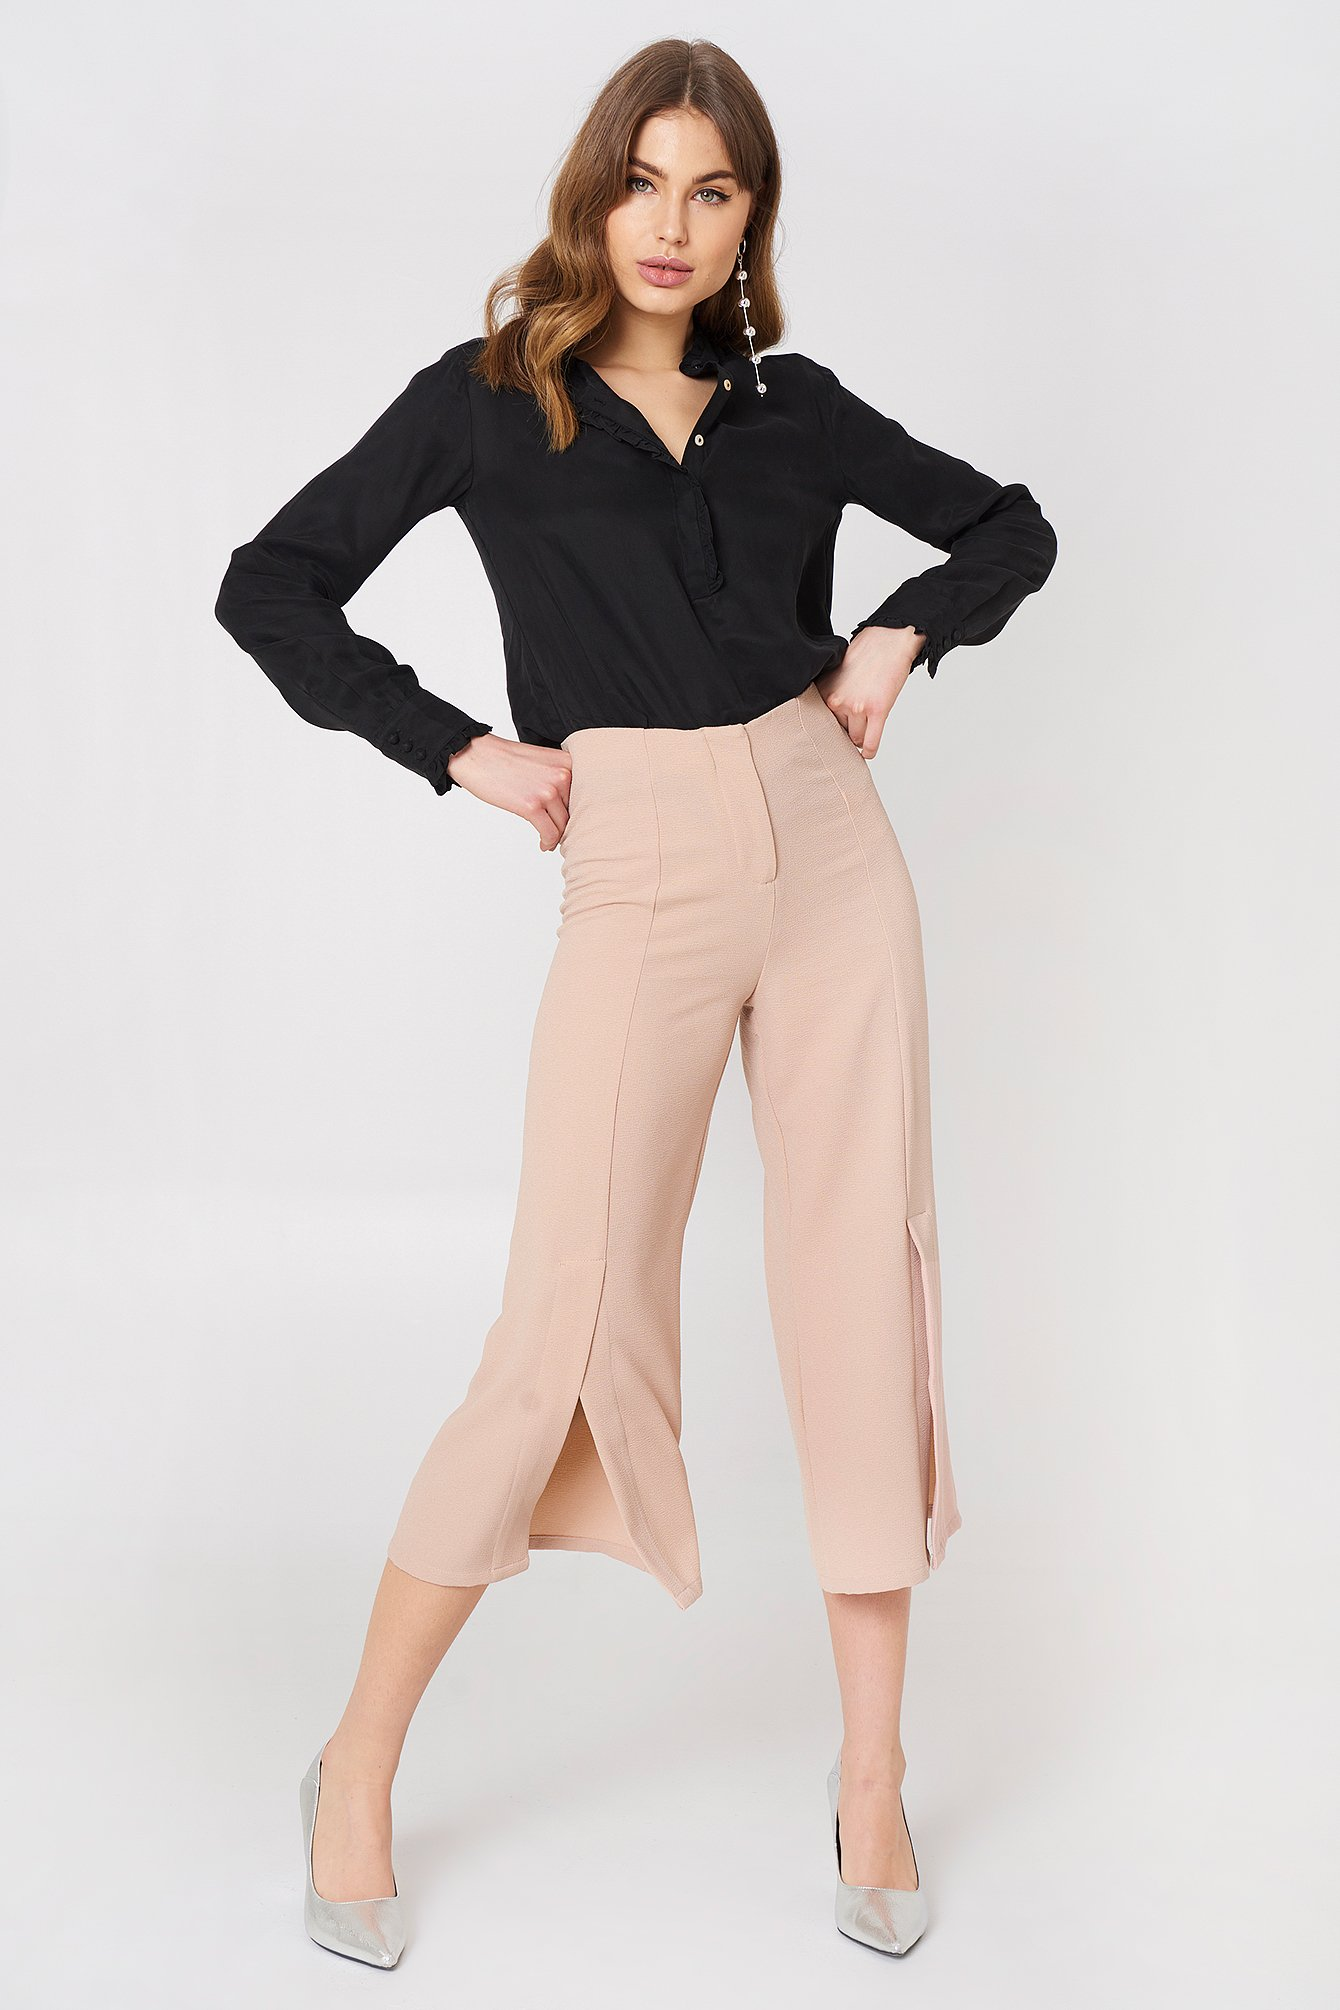 Ofelia Pant With Slit NA-KD.COM